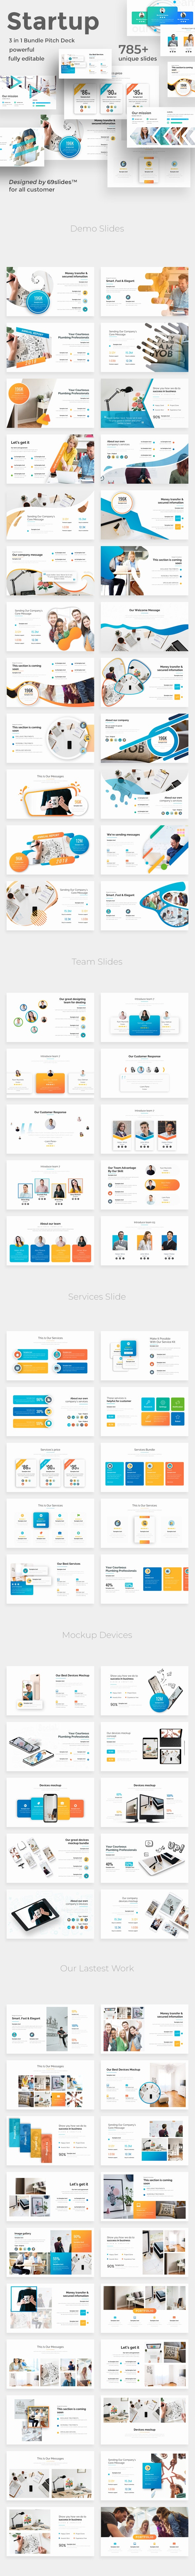 Startup Ideas 3 in 1 Pitch Deck Bundle Keynote Template - Business Keynote Templates